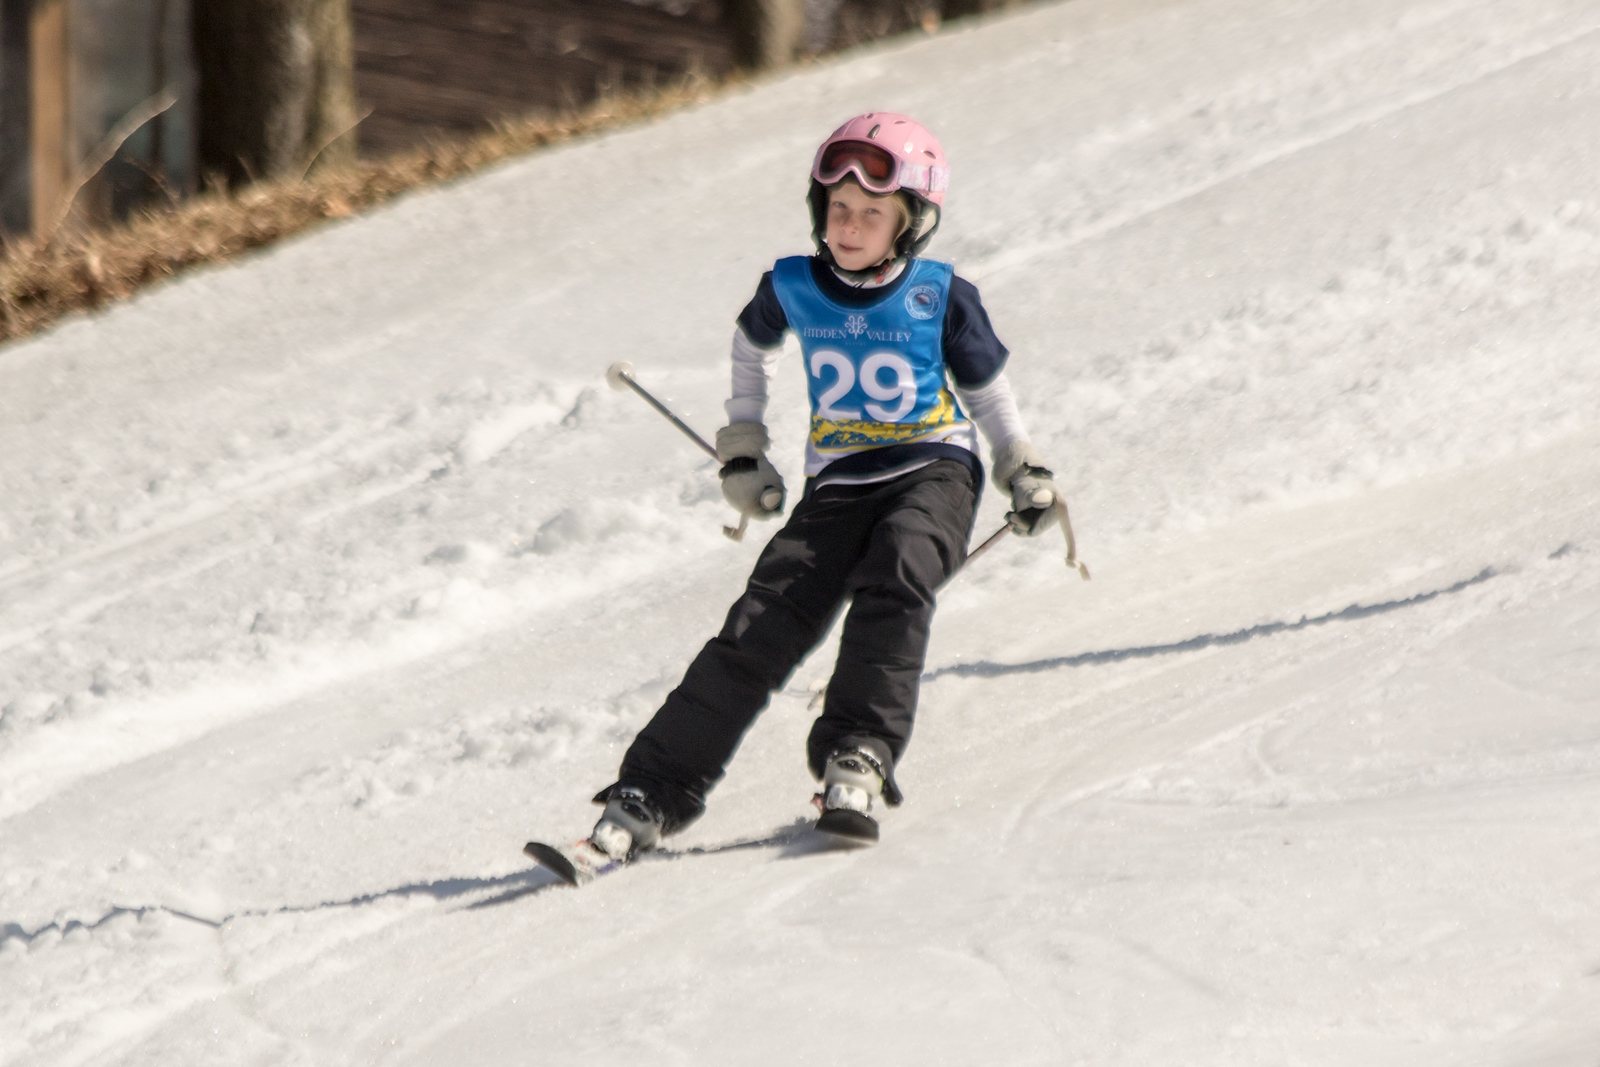 Anike Prinkey No.29 Open cup race 4 at Hidden Valley